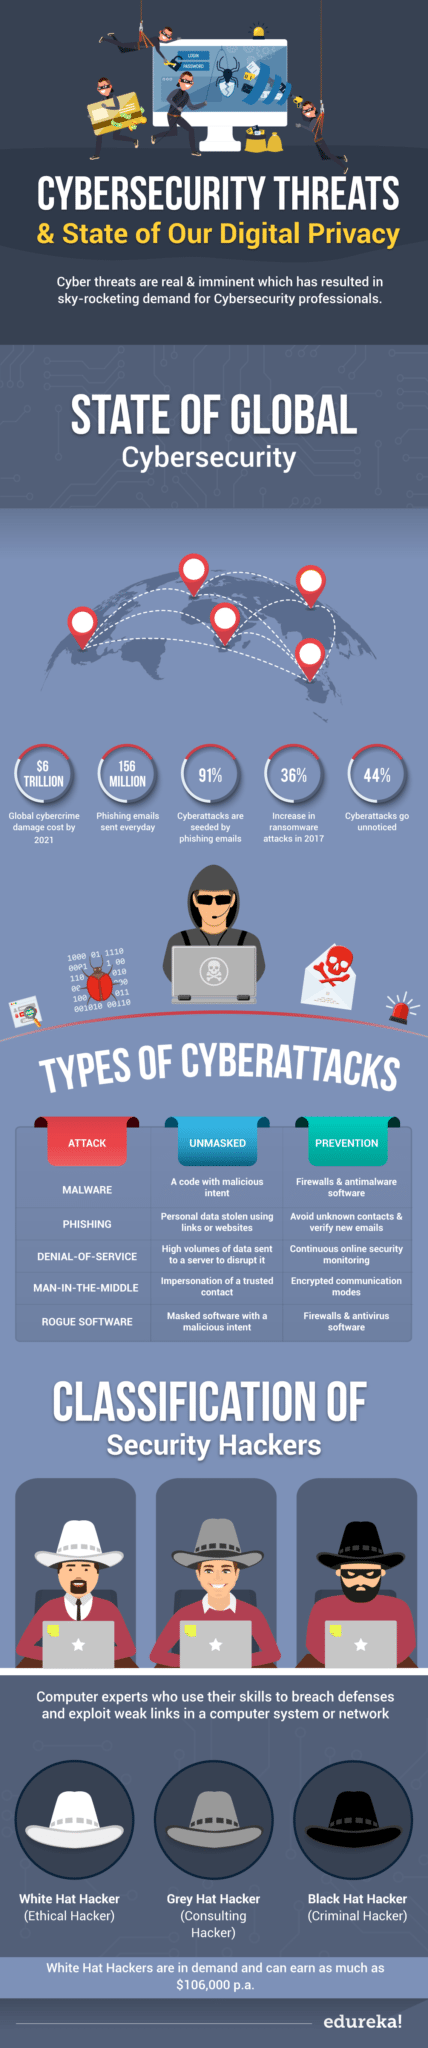 Cybersecurity Threats | Edureka